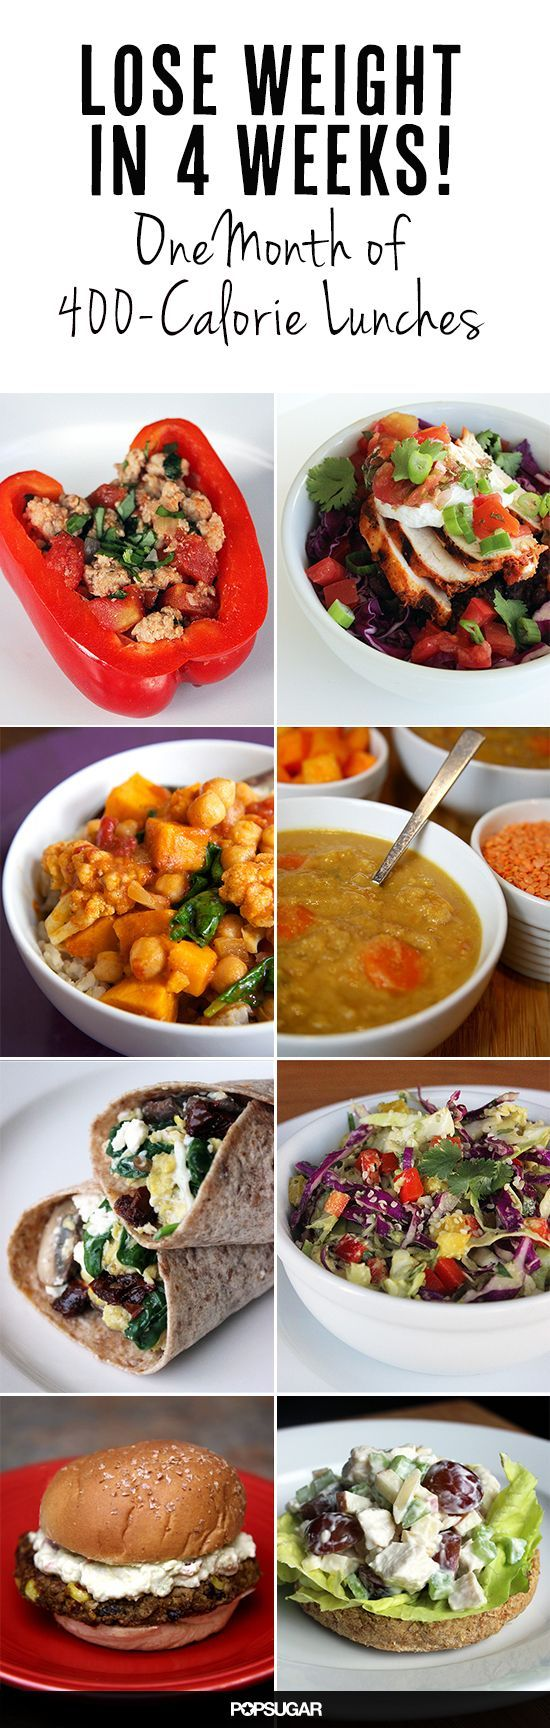 400 calorie different lunches for a month Some much needed lunch ideas, can be made SW friendly